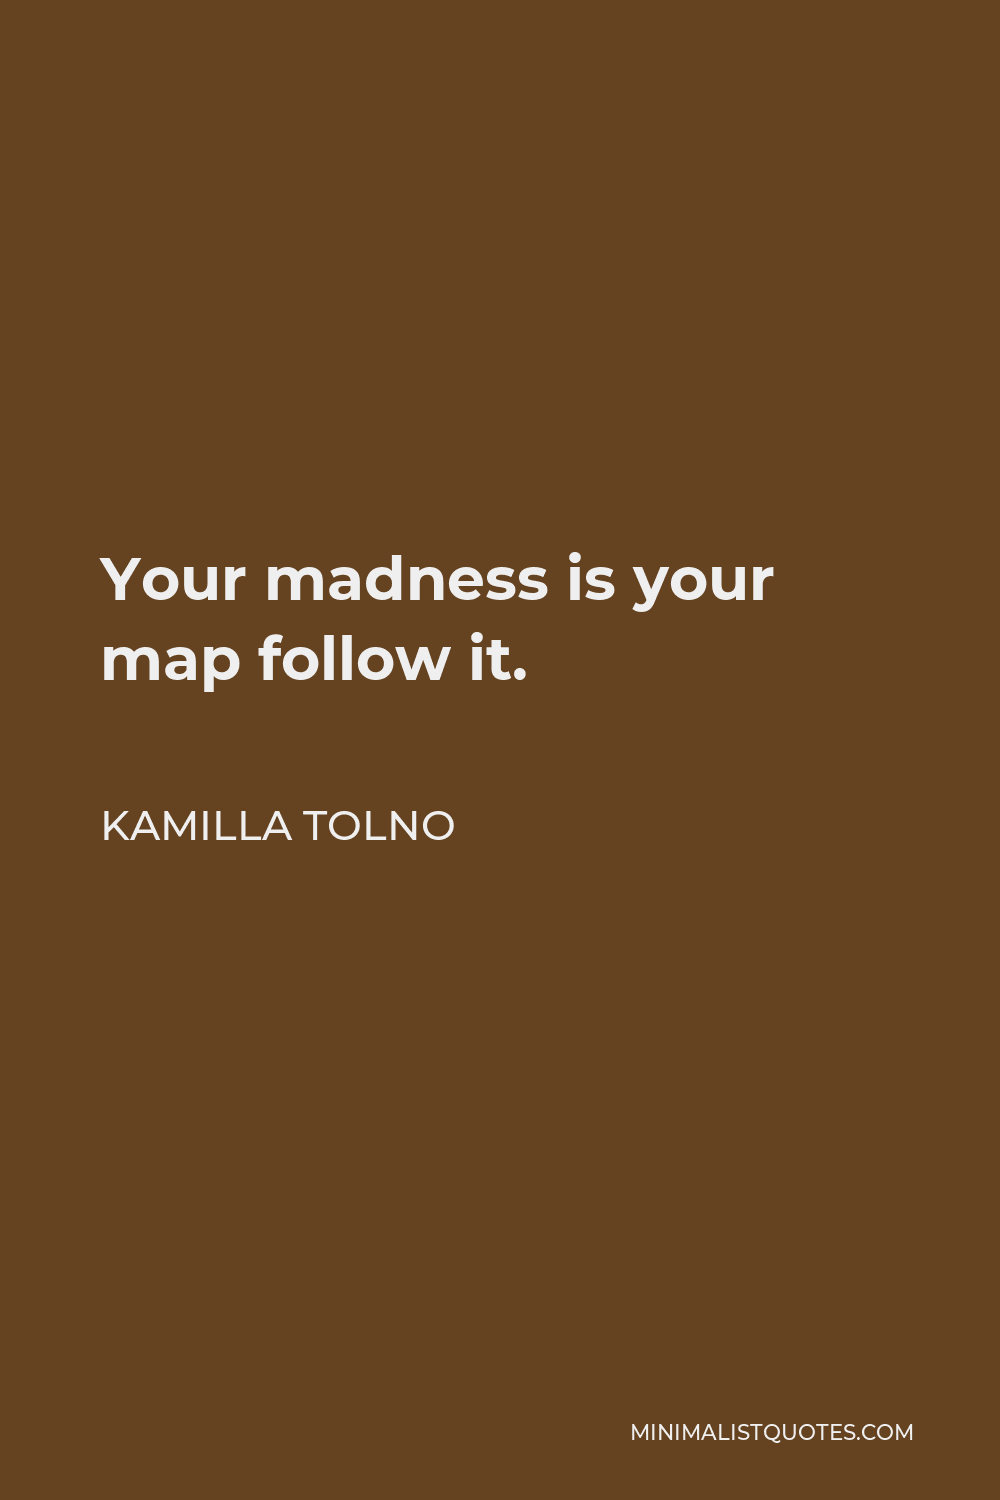 Kamilla Tolno Quote - Your madness is your map follow it.